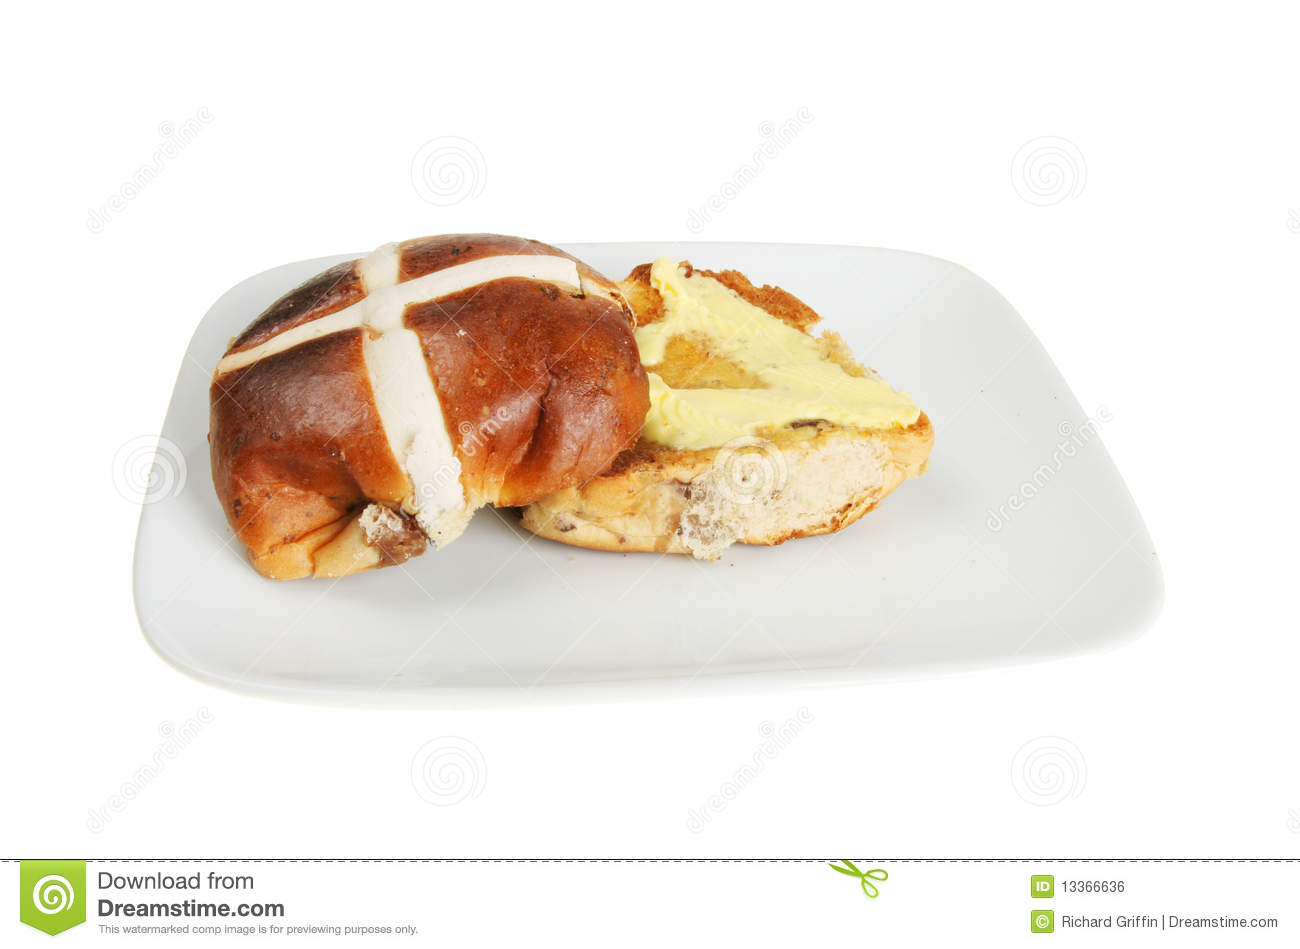 Buttered Hot Cross Bun Royalty Free Stock Image - Image: 13366636